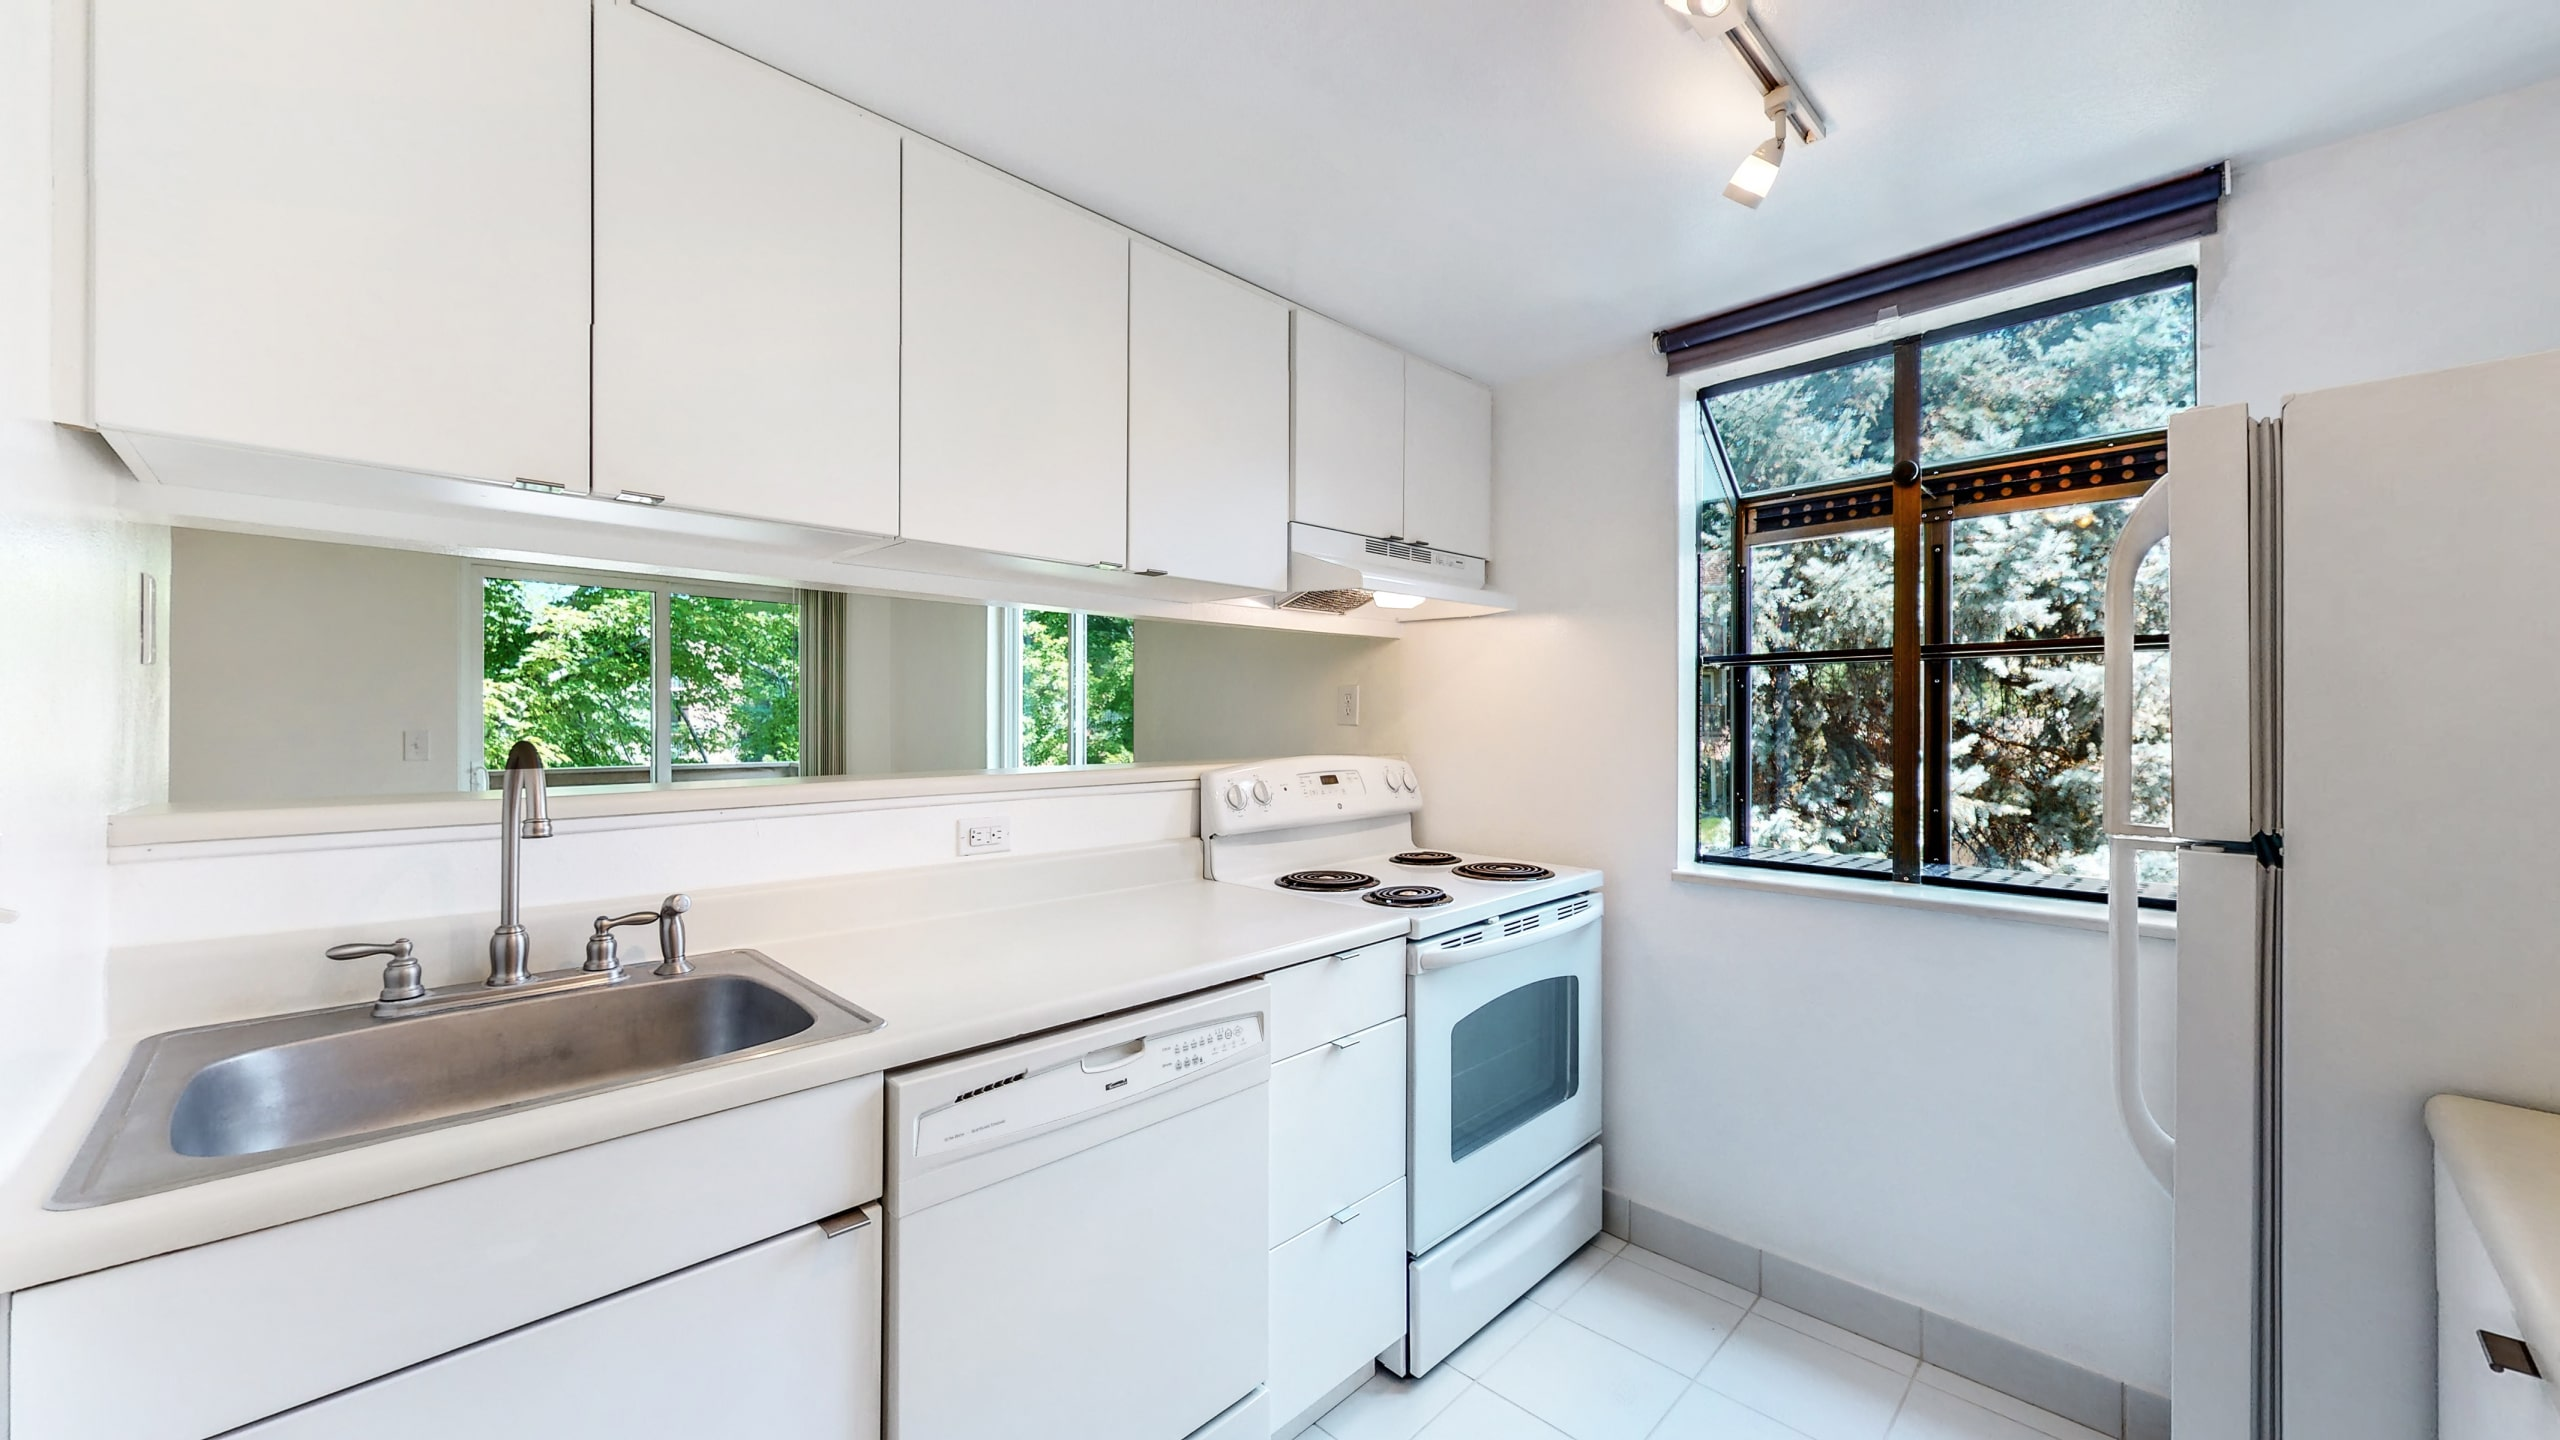 Kitchen with new white cabinets and white counters at Spinnaker Run II